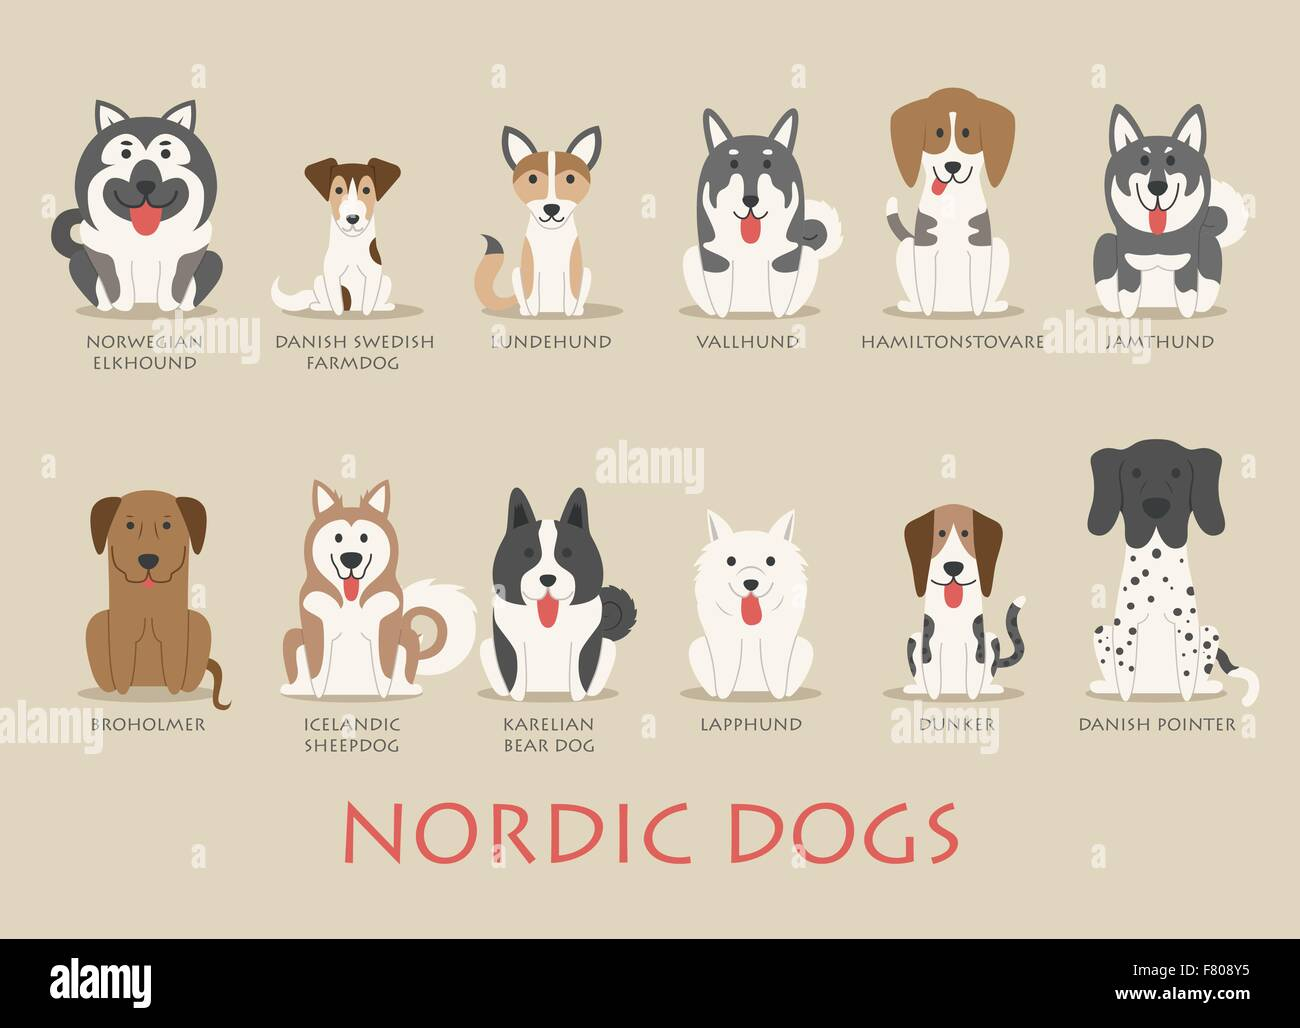 Set of nordic dogs - Stock Image